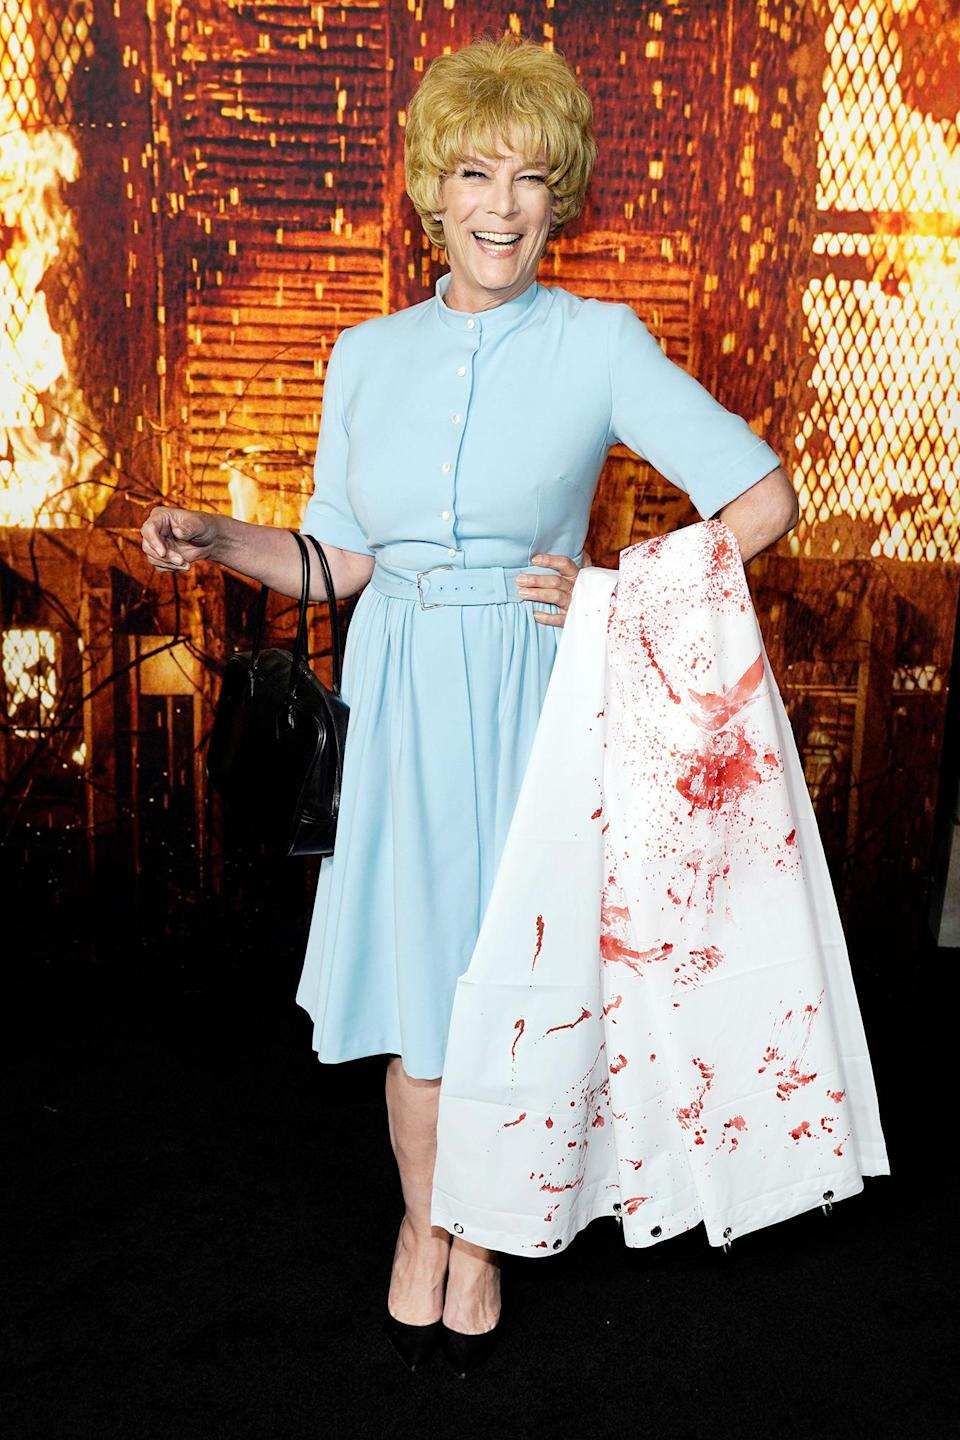 <p>Jamie Lee Curtis channels her mother Janet Leigh's character in <i>Psycho</i> at the premiere of <i>Halloween Kills</i> at the TCL Chinese Theatre in L.A. on Oct. 12. </p>